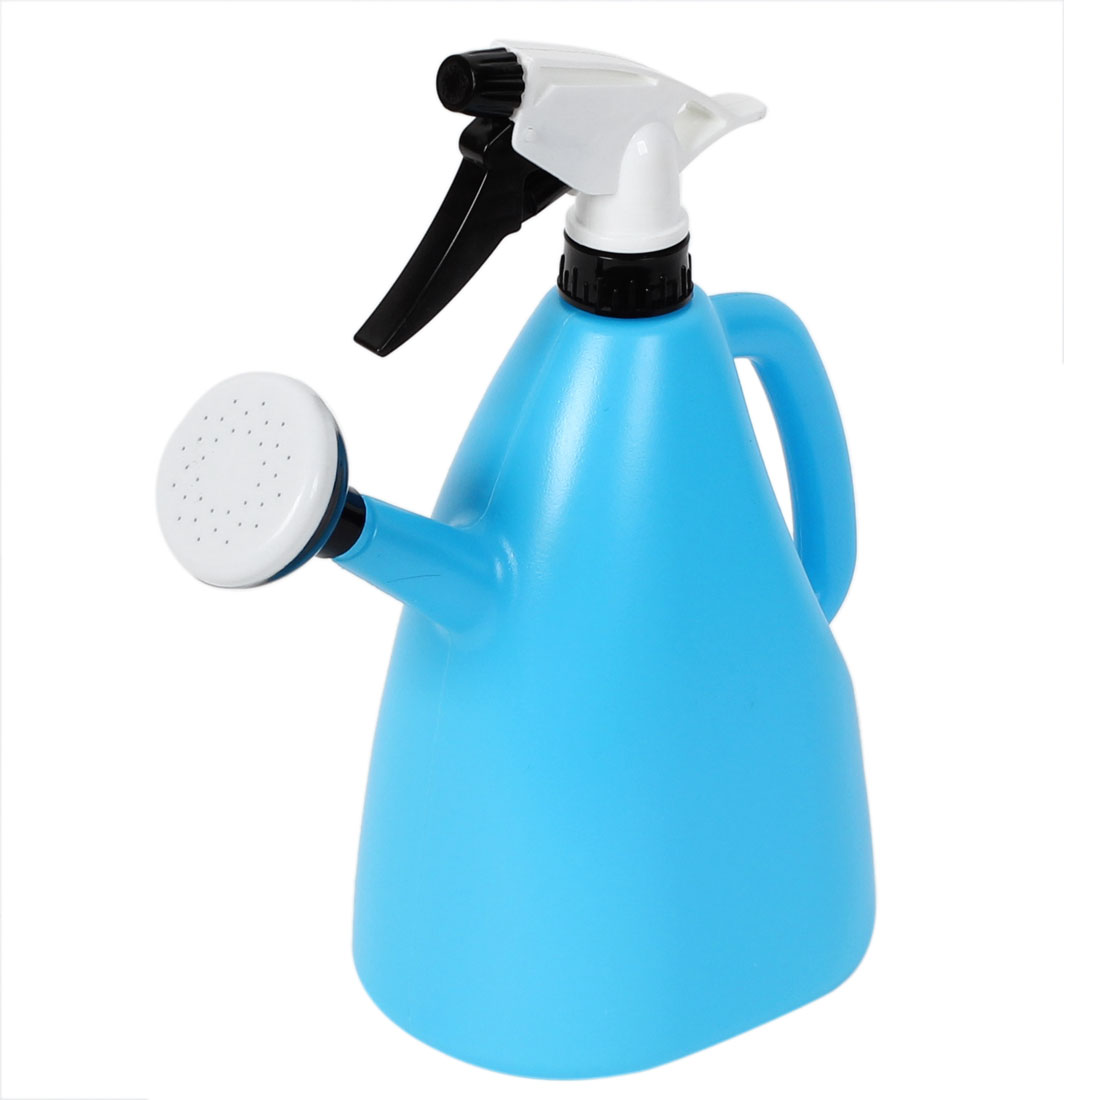 Garden Plastic Dual Nozzles Water Flower Trigger Spray Bottle Sprayer Sky Blue by